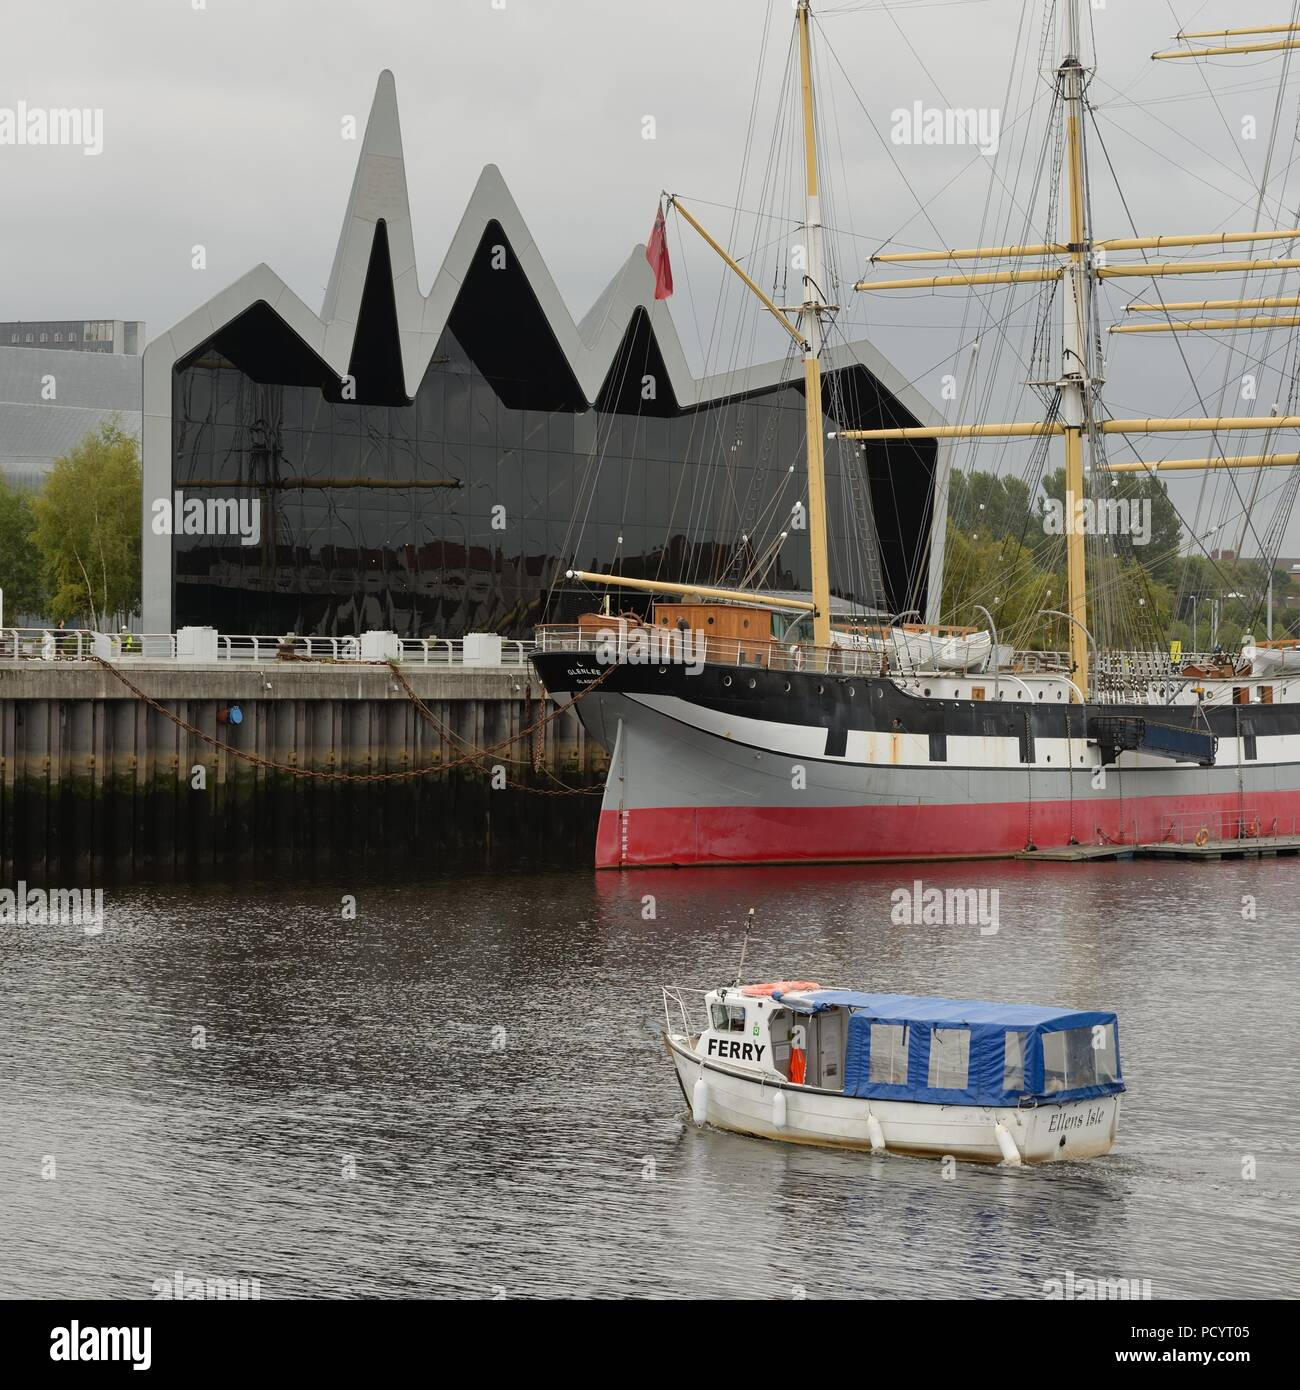 The free summer time ferry running across the Clyde between Govan and the Riverside museum of transport in Glasgow, Scotland, UK - Stock Image